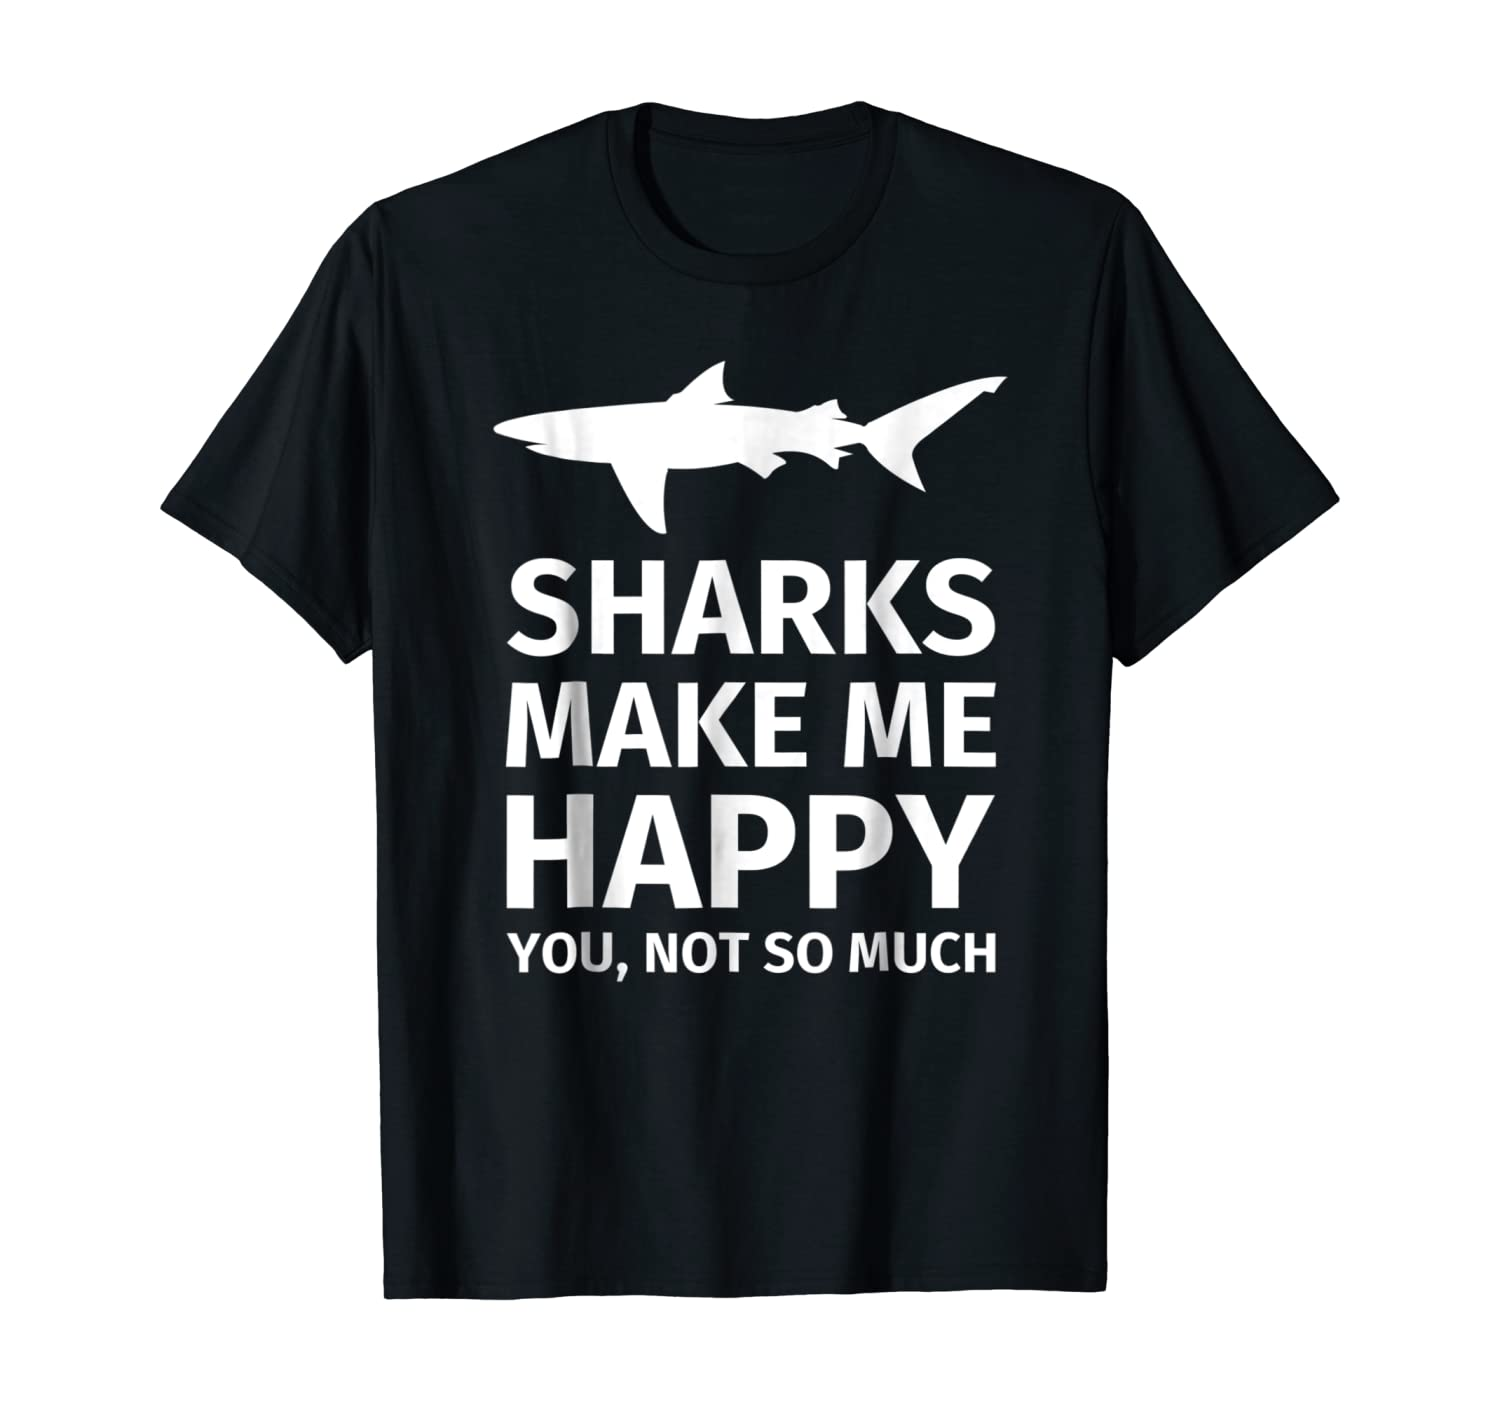 Shark Gifts for Shark Lovers - Funny Sharks Happy T-Shirt